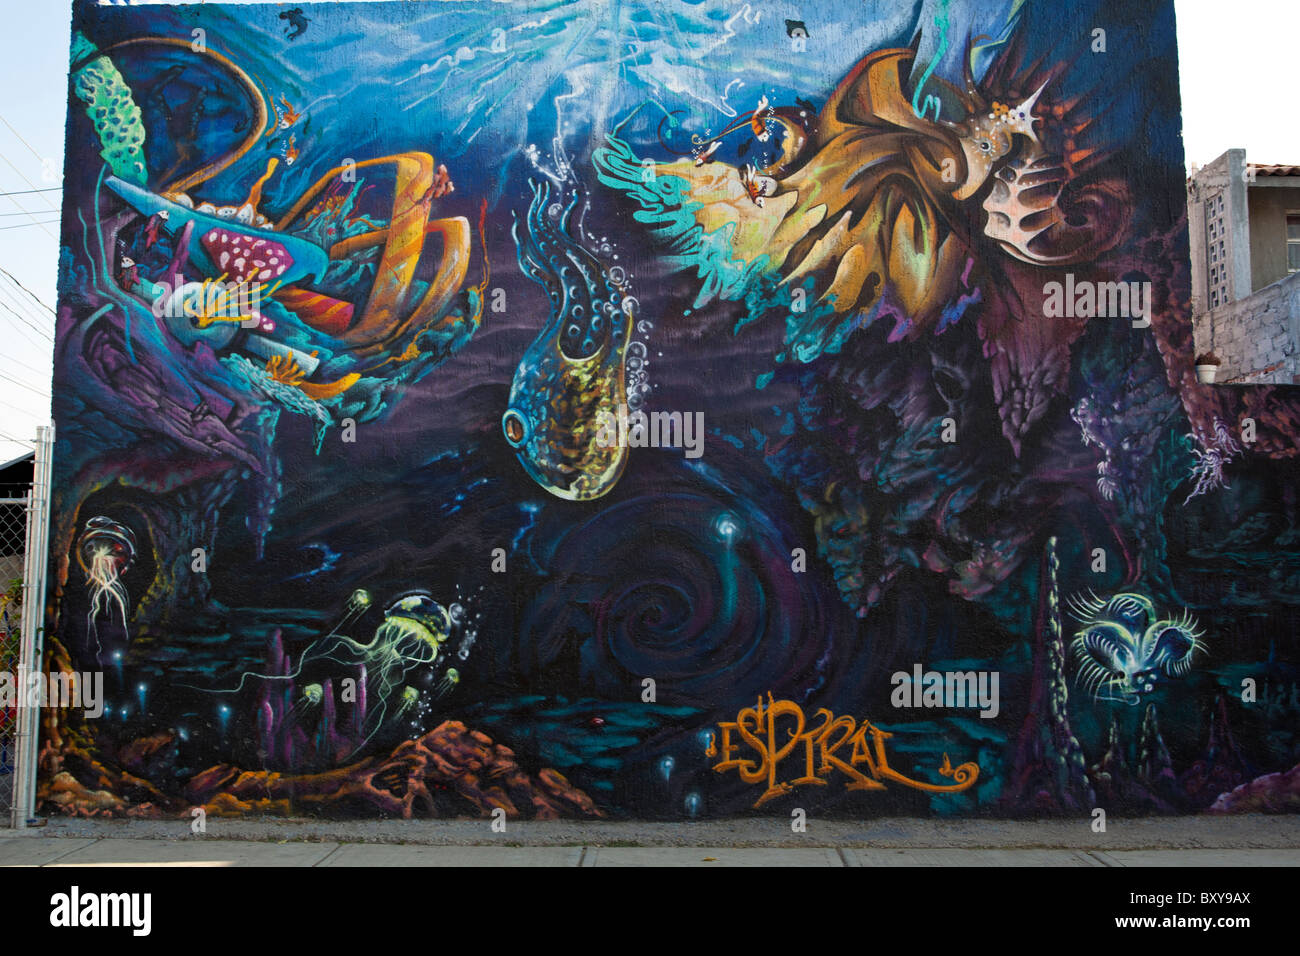 Underwater Abstract Wall Mural Along A Street In The Spanish